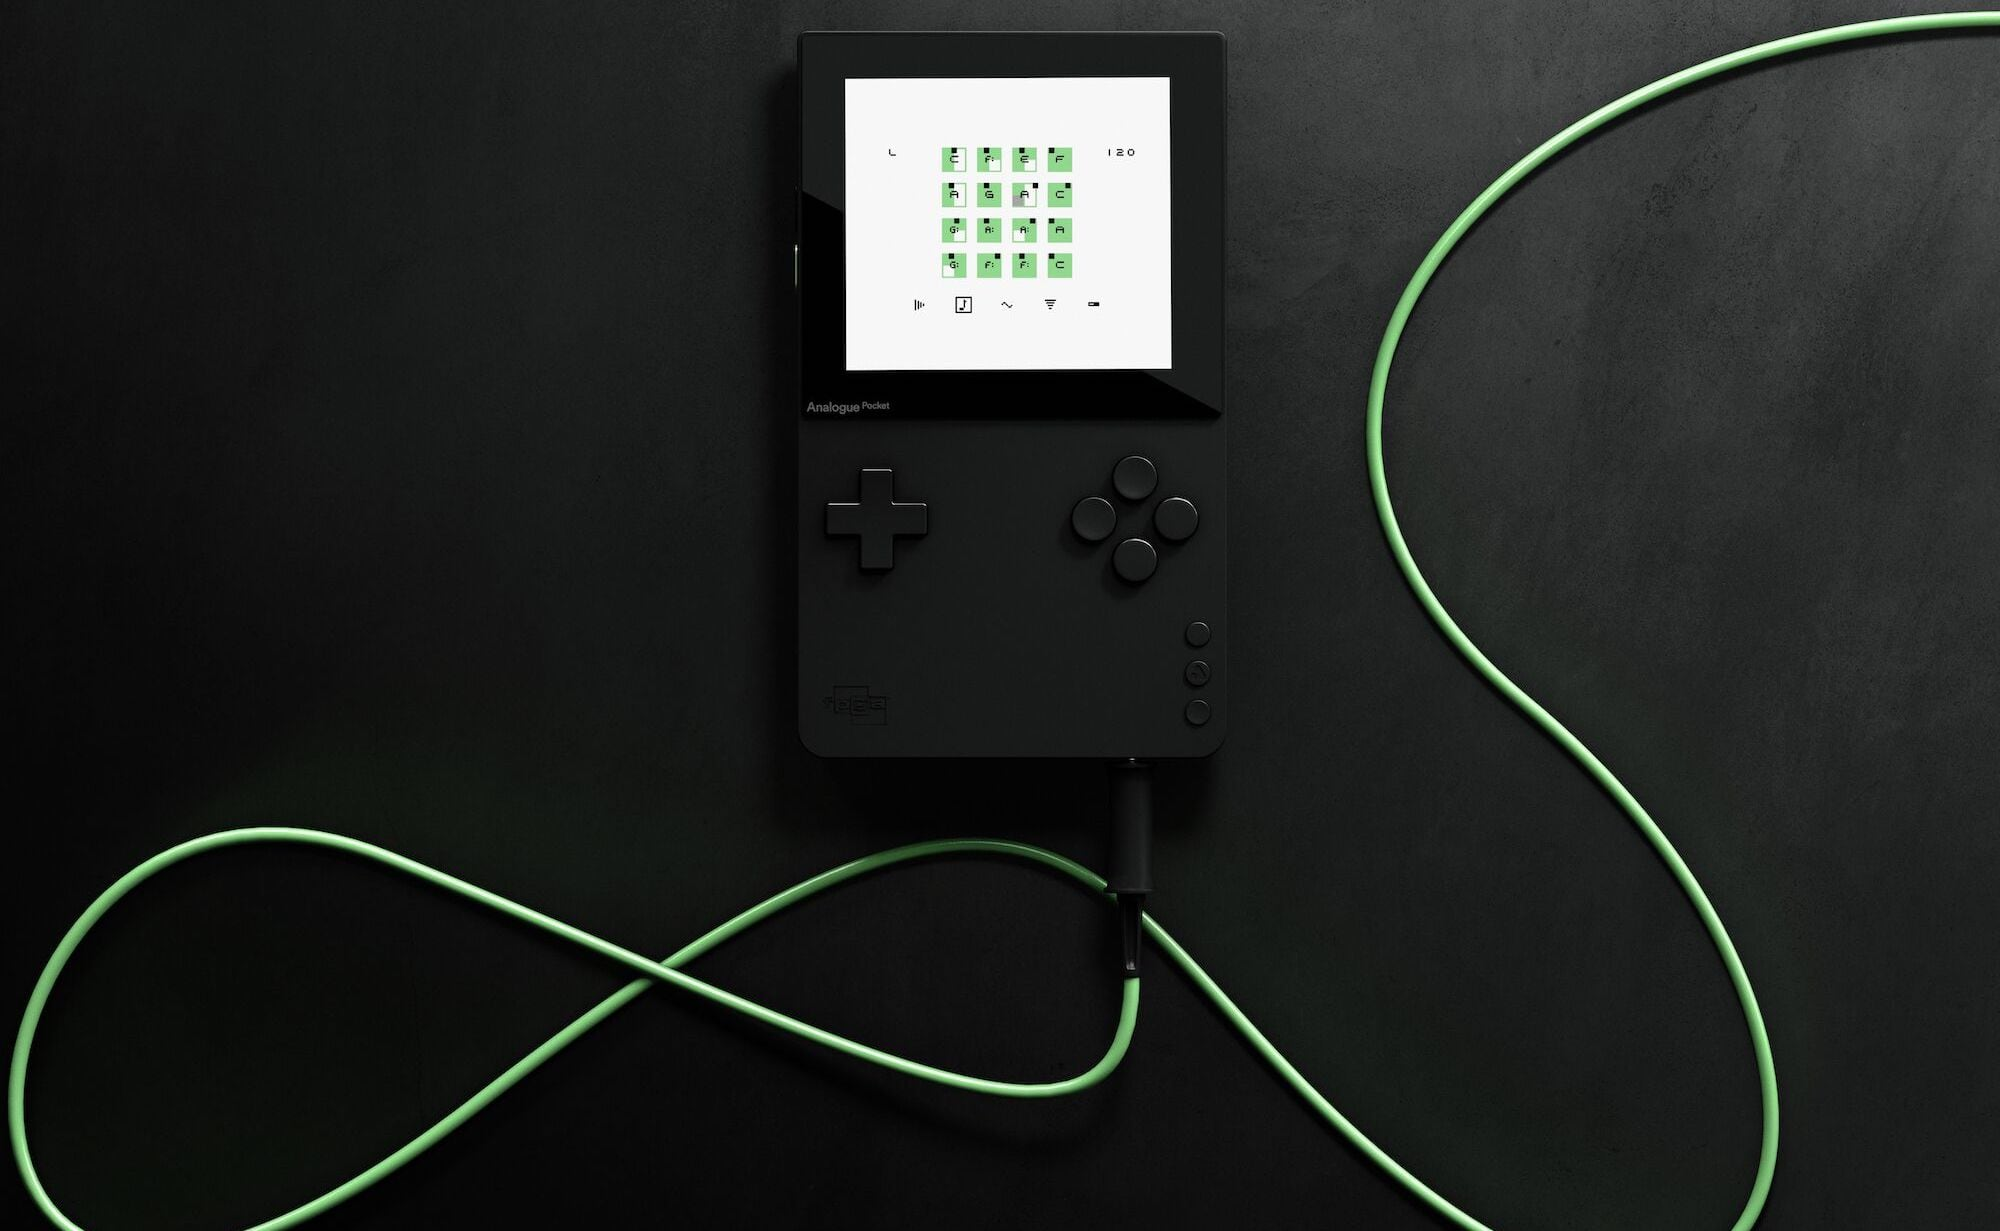 The black handheld video game system with its green cord displayed around it